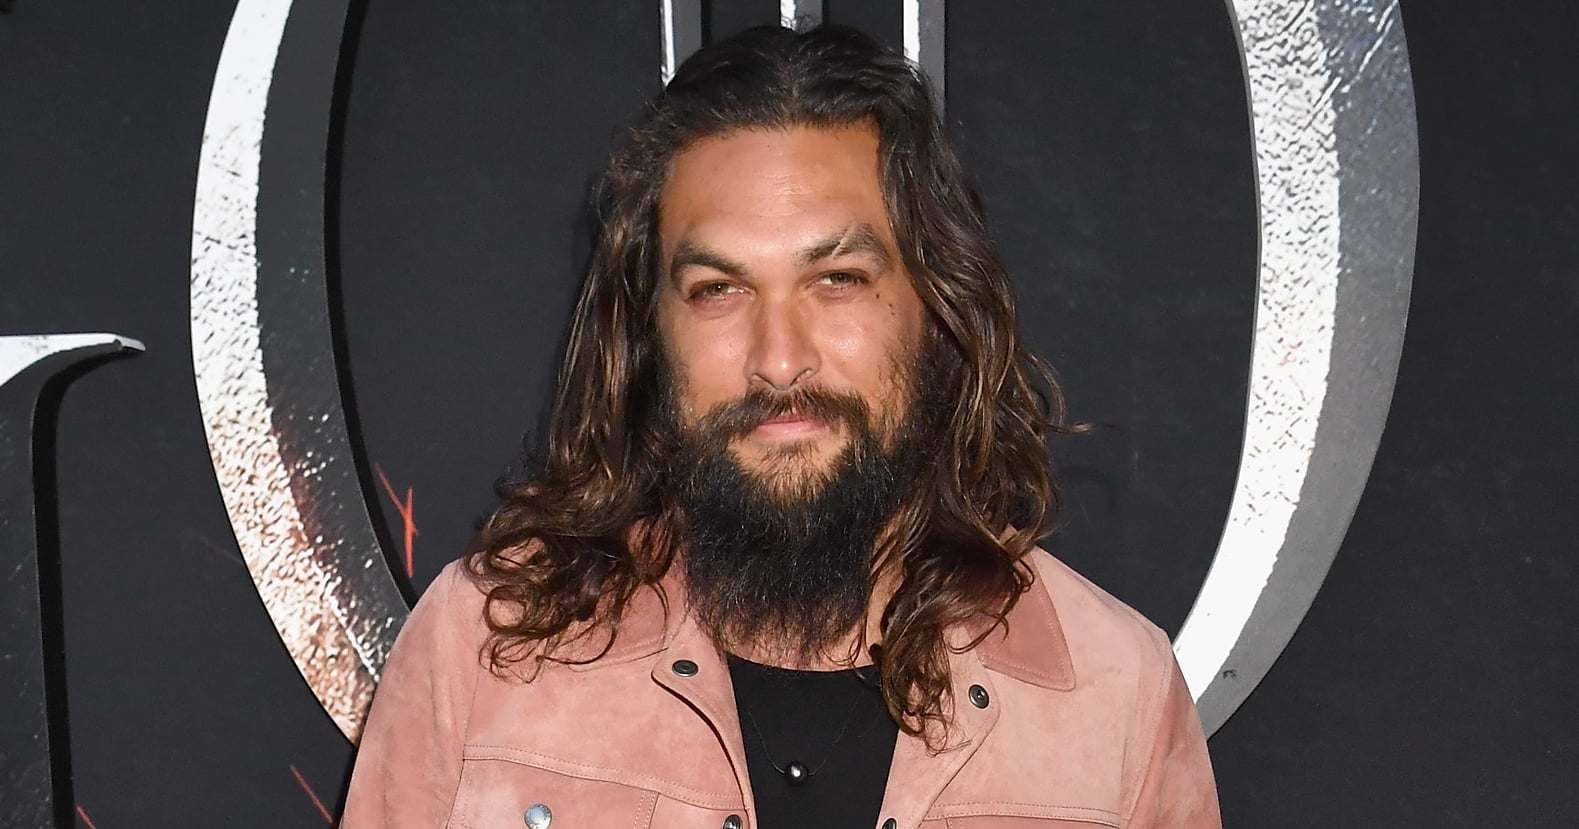 Jason Momoa Shows His Support For the Telescope Protest in Hawaii